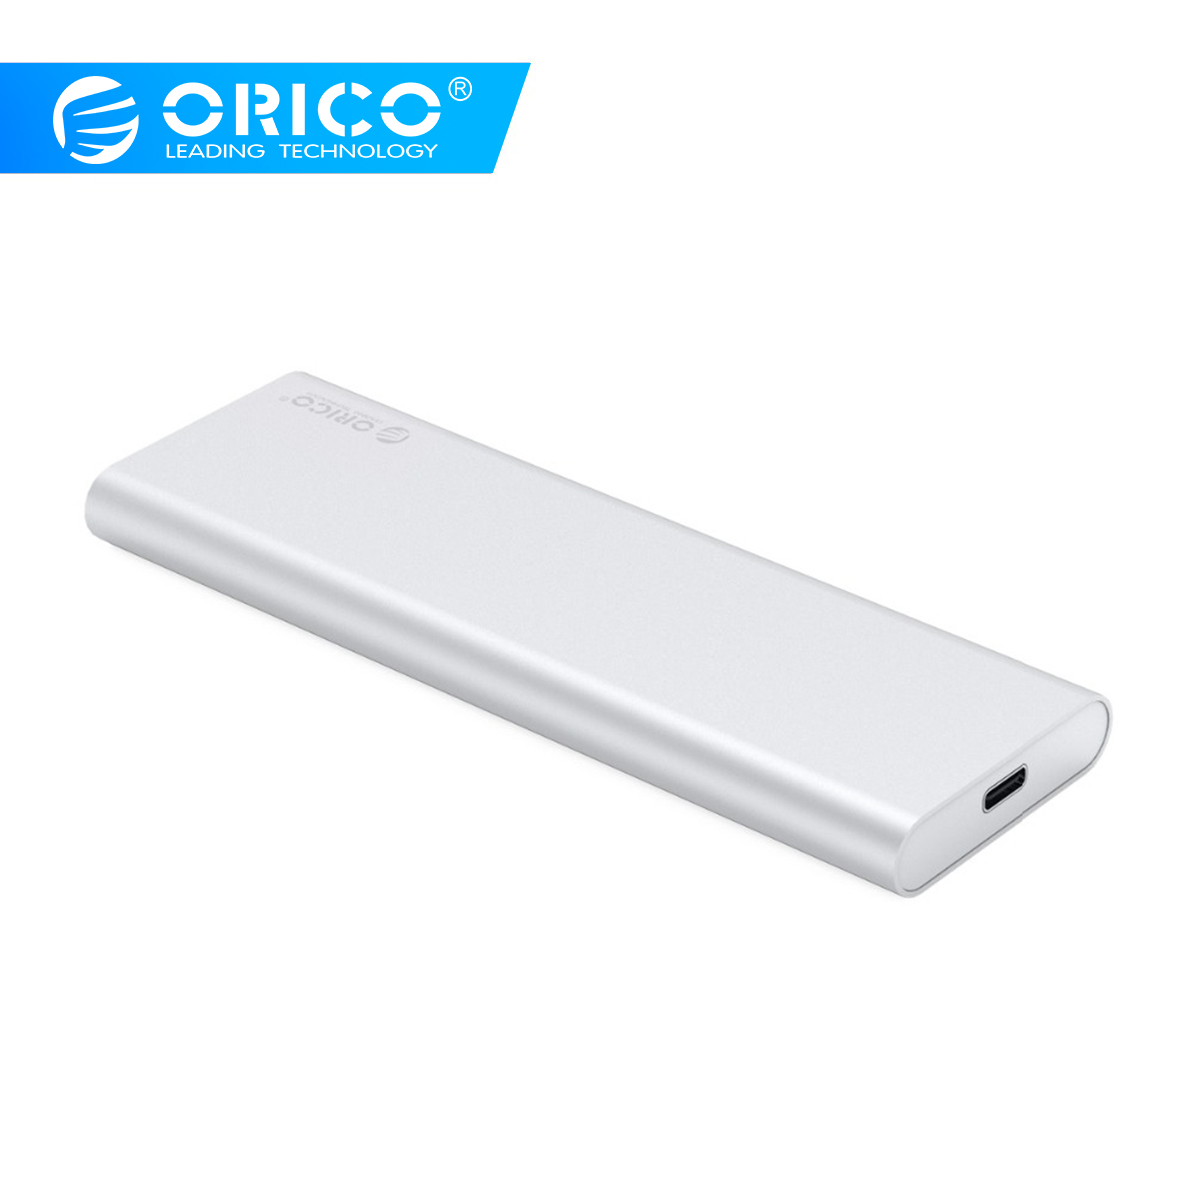 ORICO 2 Bay SSD Enclosure Type-C USB3.1 10Gbps Gen2 M SATA SDD Support Raid 0 PM 2TB 4TB Max Compatible with Windows/Linux/Mac